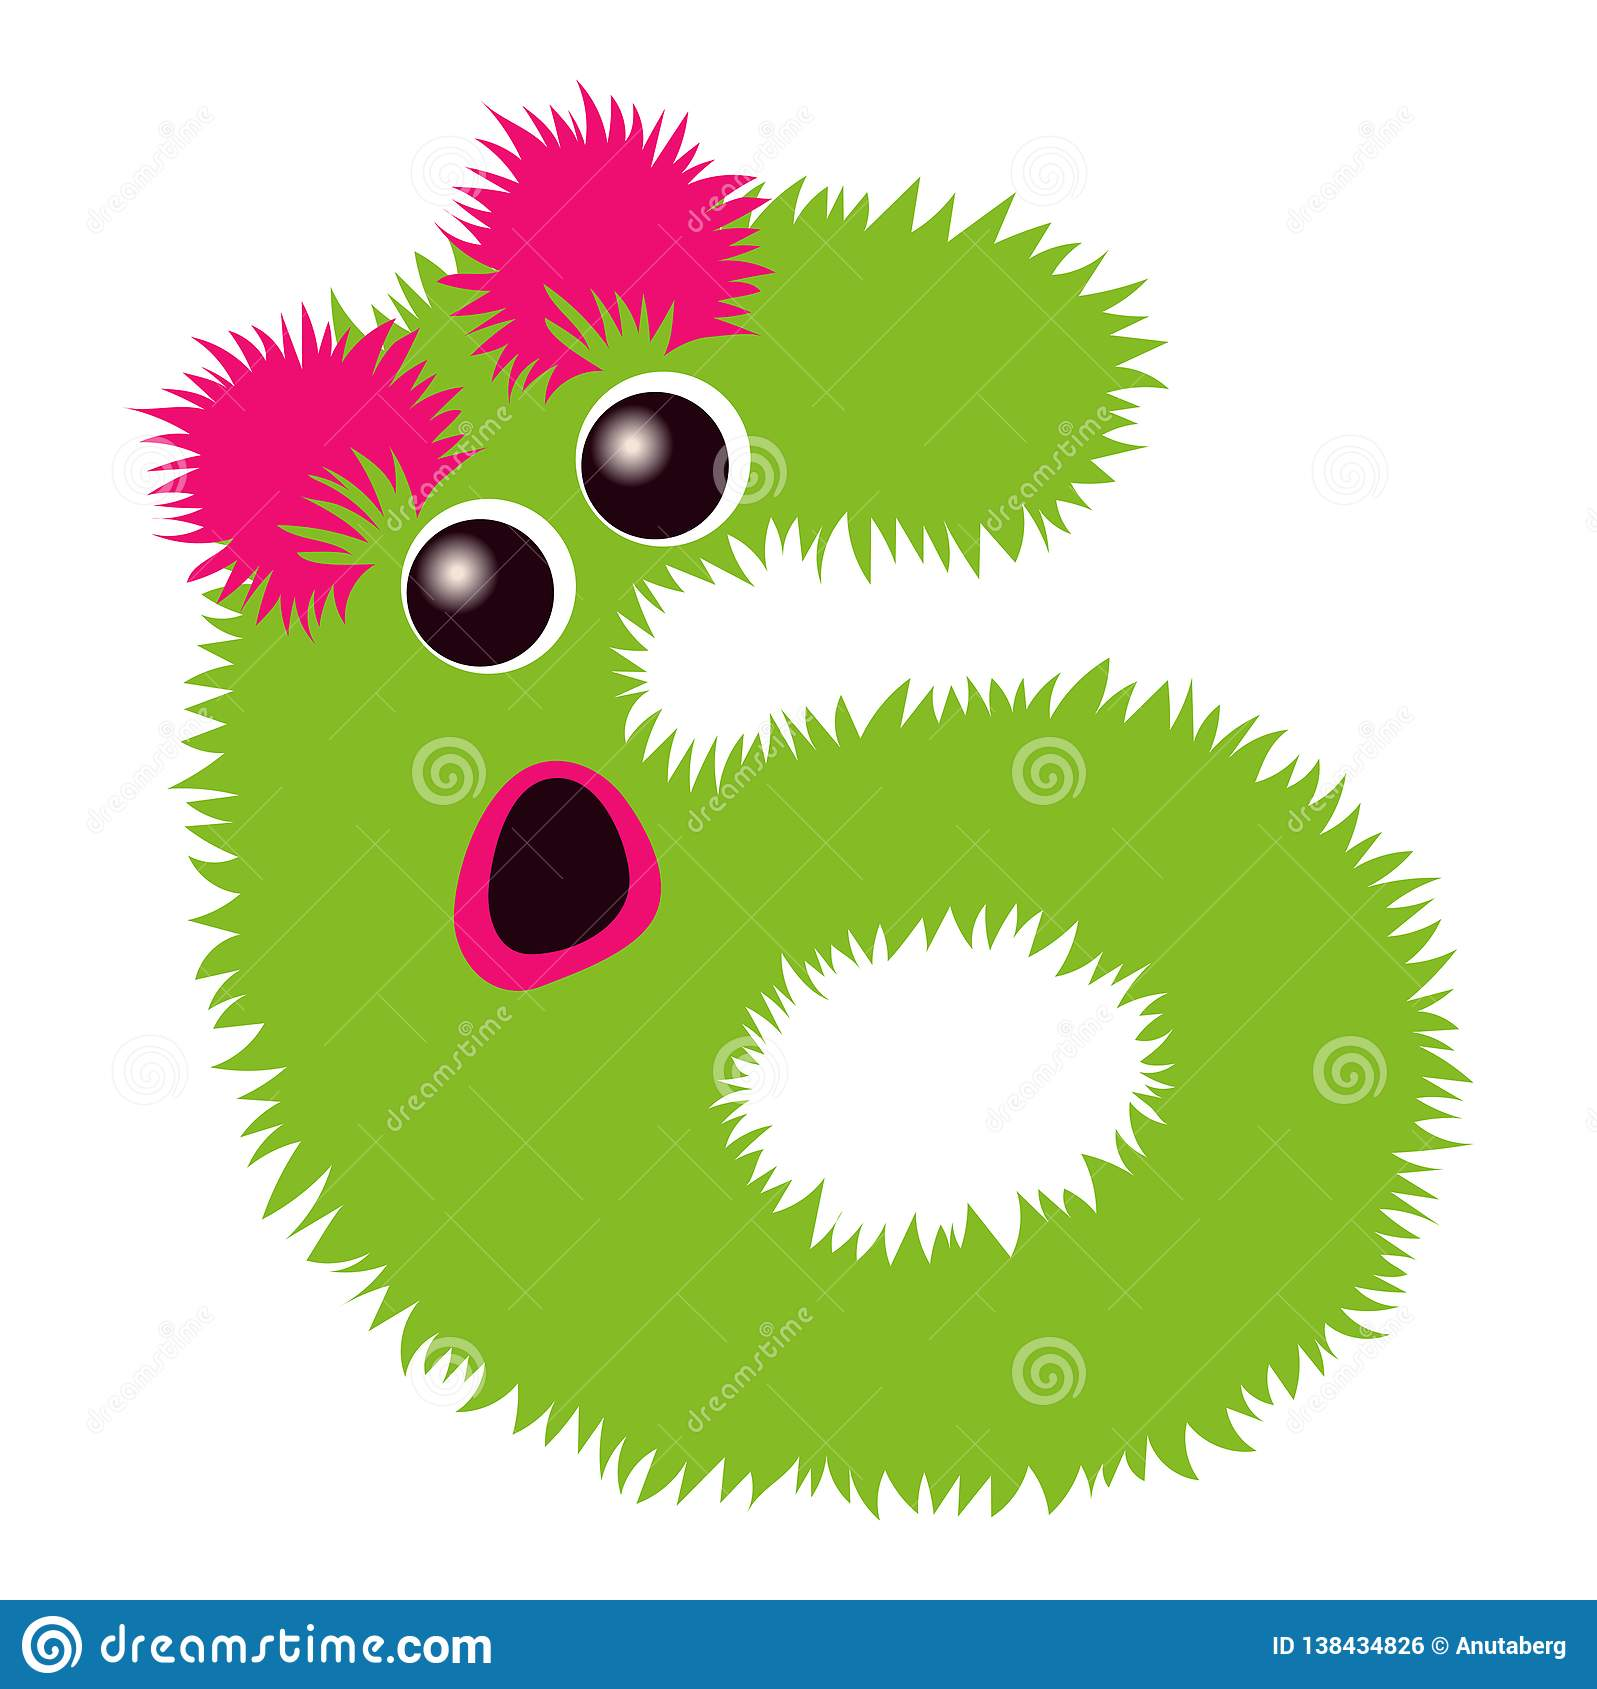 Cartoon Cute Pinc And Green Monster Number Six Stock Vector Illustration Of Cartoon Graphic 138434826